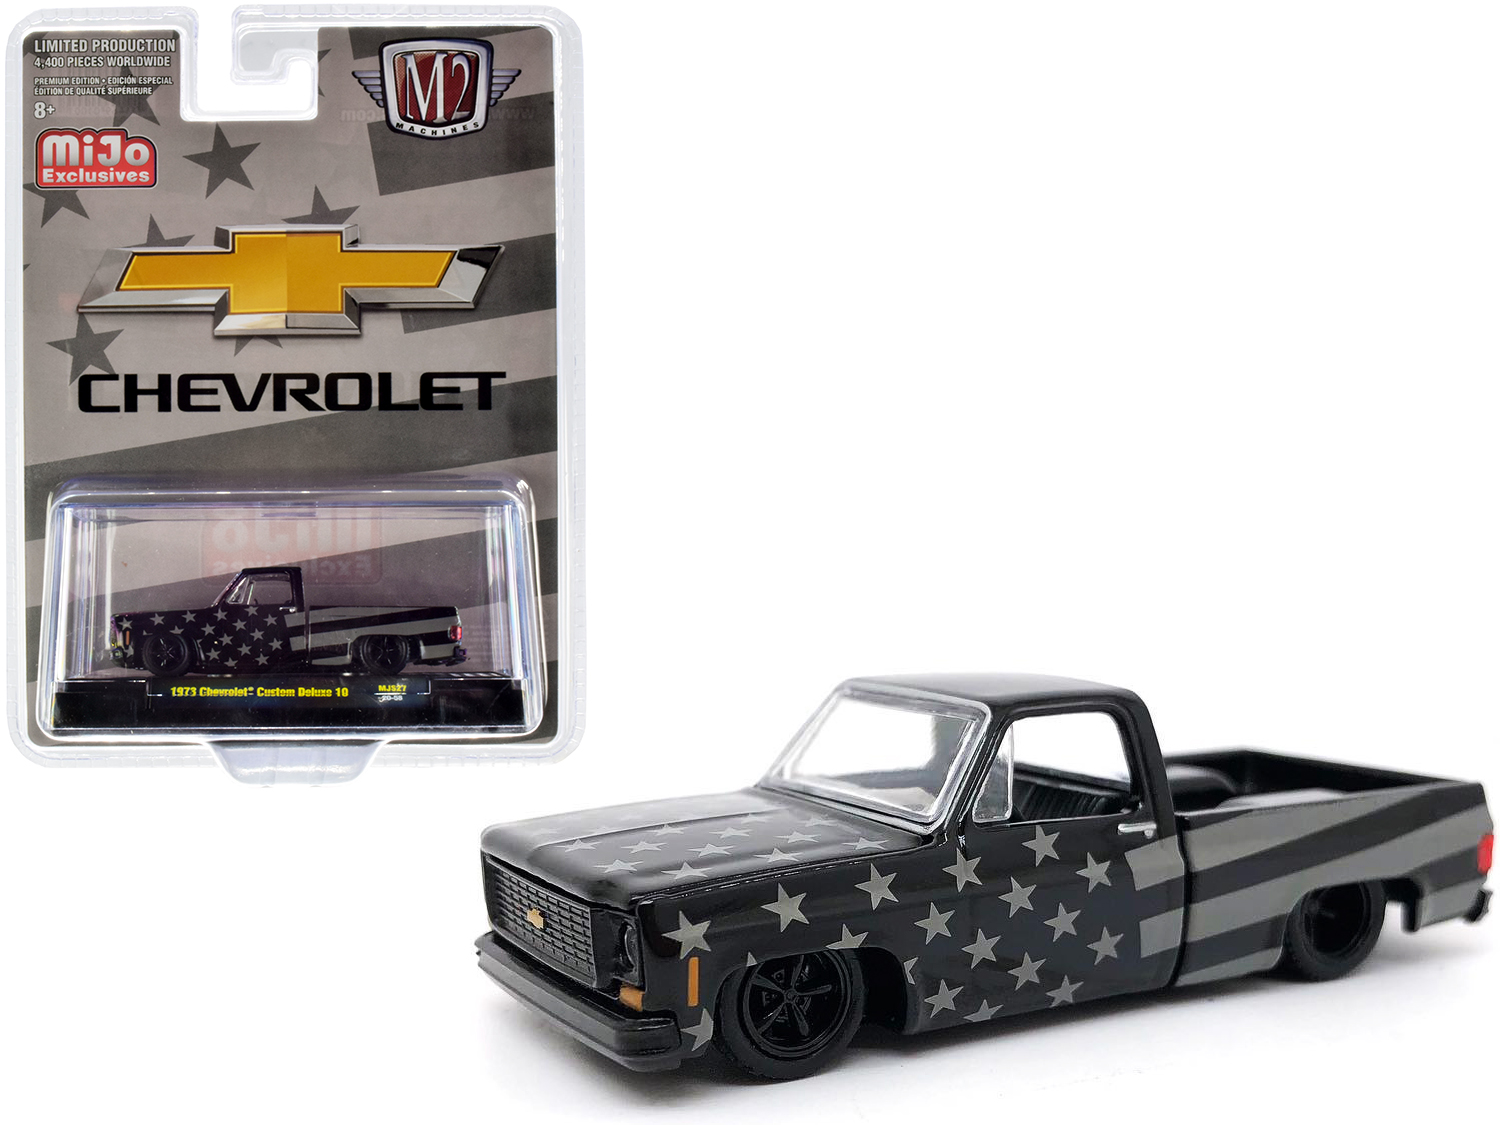 1973 Chevrolet Custom Deluxe 10 Square Body Pickup Truck Black And Gray Limited Edition To 4400 Pieces Worldwide 1 64 Diecast Model Car By M2 Machines Walmart Com Walmart Com